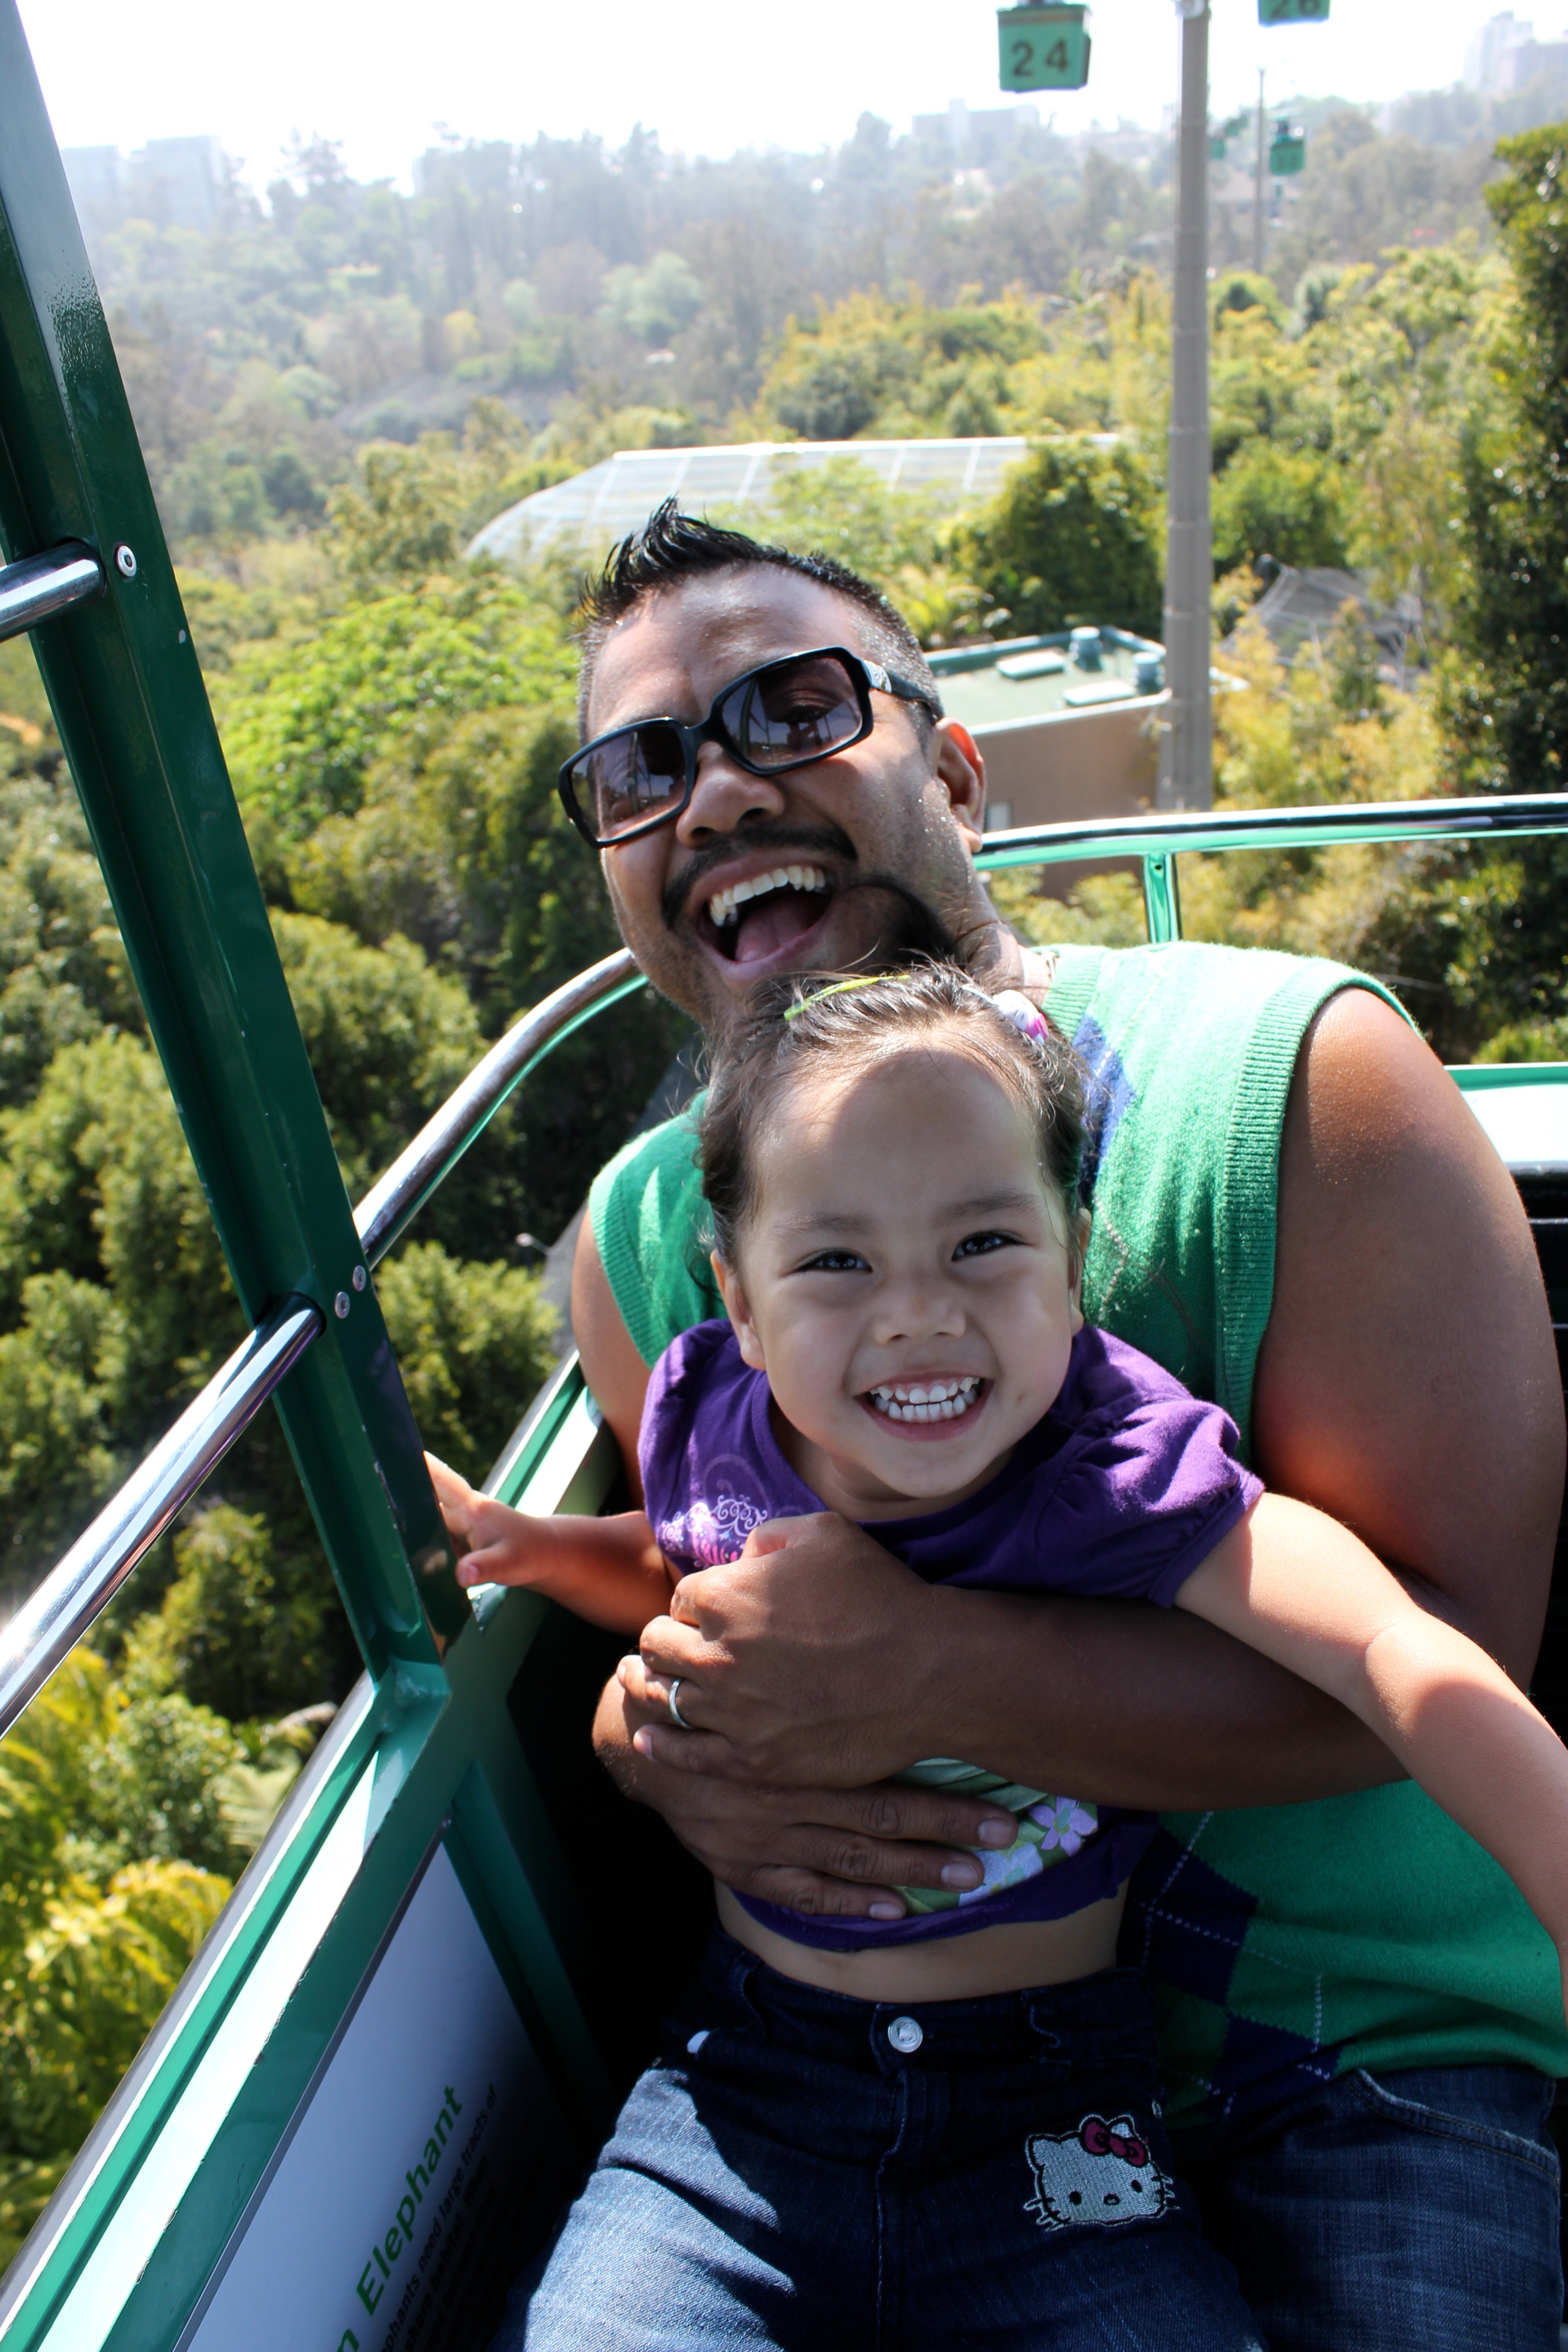 Our Daughter Gabriella really LOVES The world Famous San Diego ZOO! Here she is, her first time on the SkyFari and she was fearless!